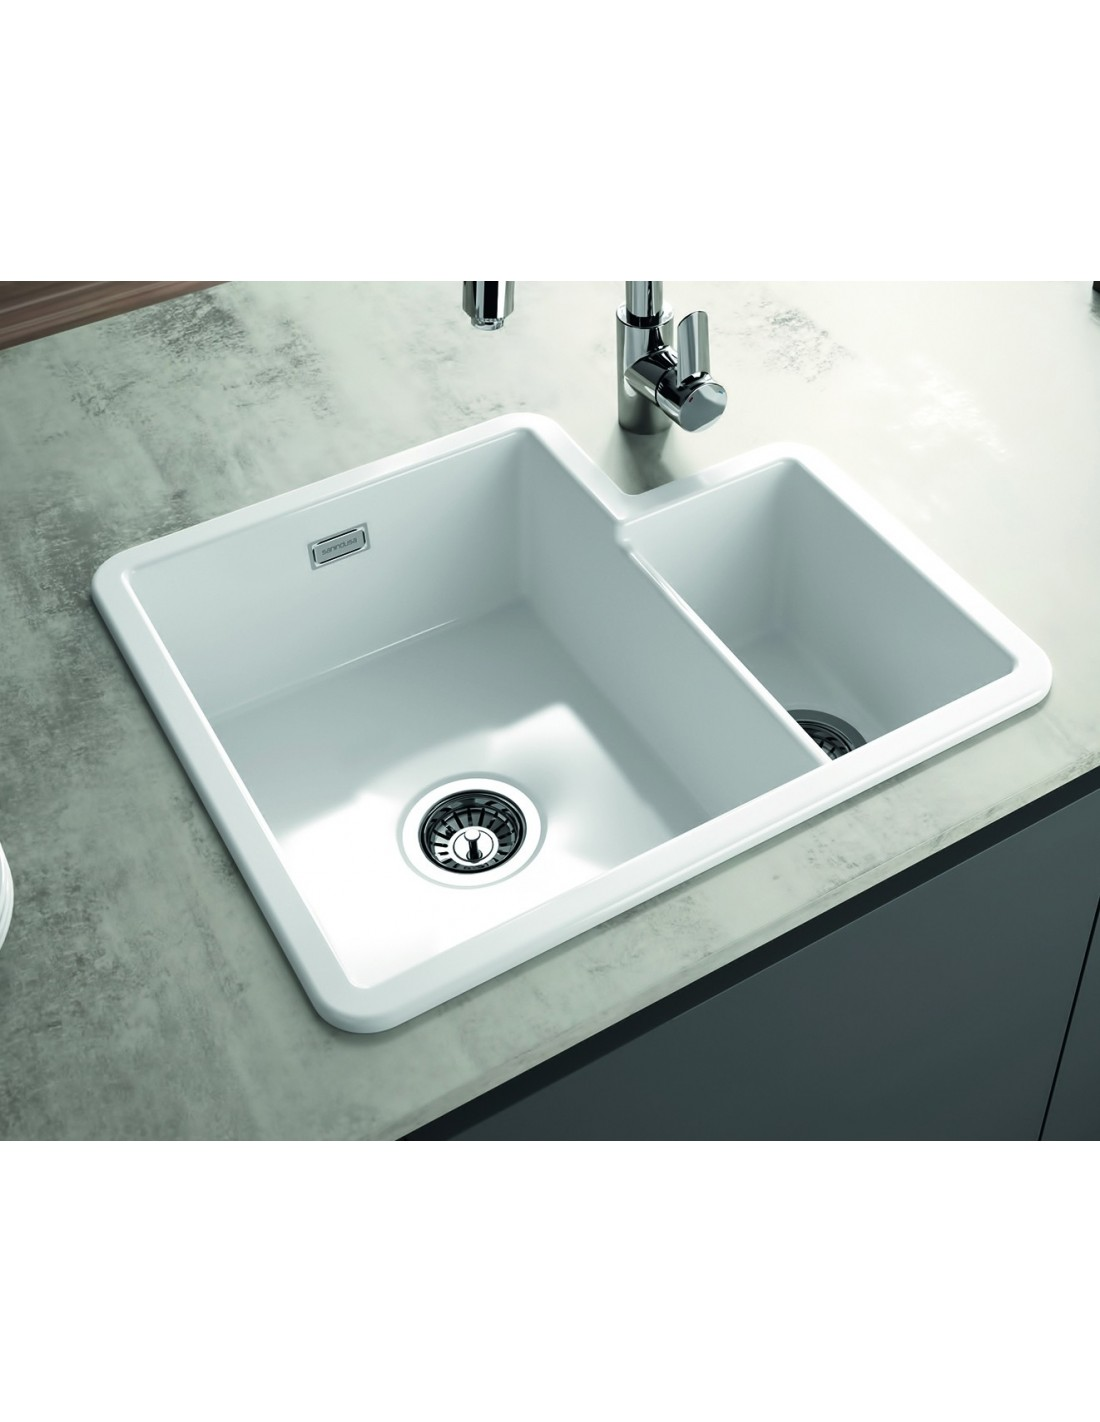 Kitchen Sinks Inset Or Topmount Fitted Kitchen Sinks 1 5 Bowl Kitchen